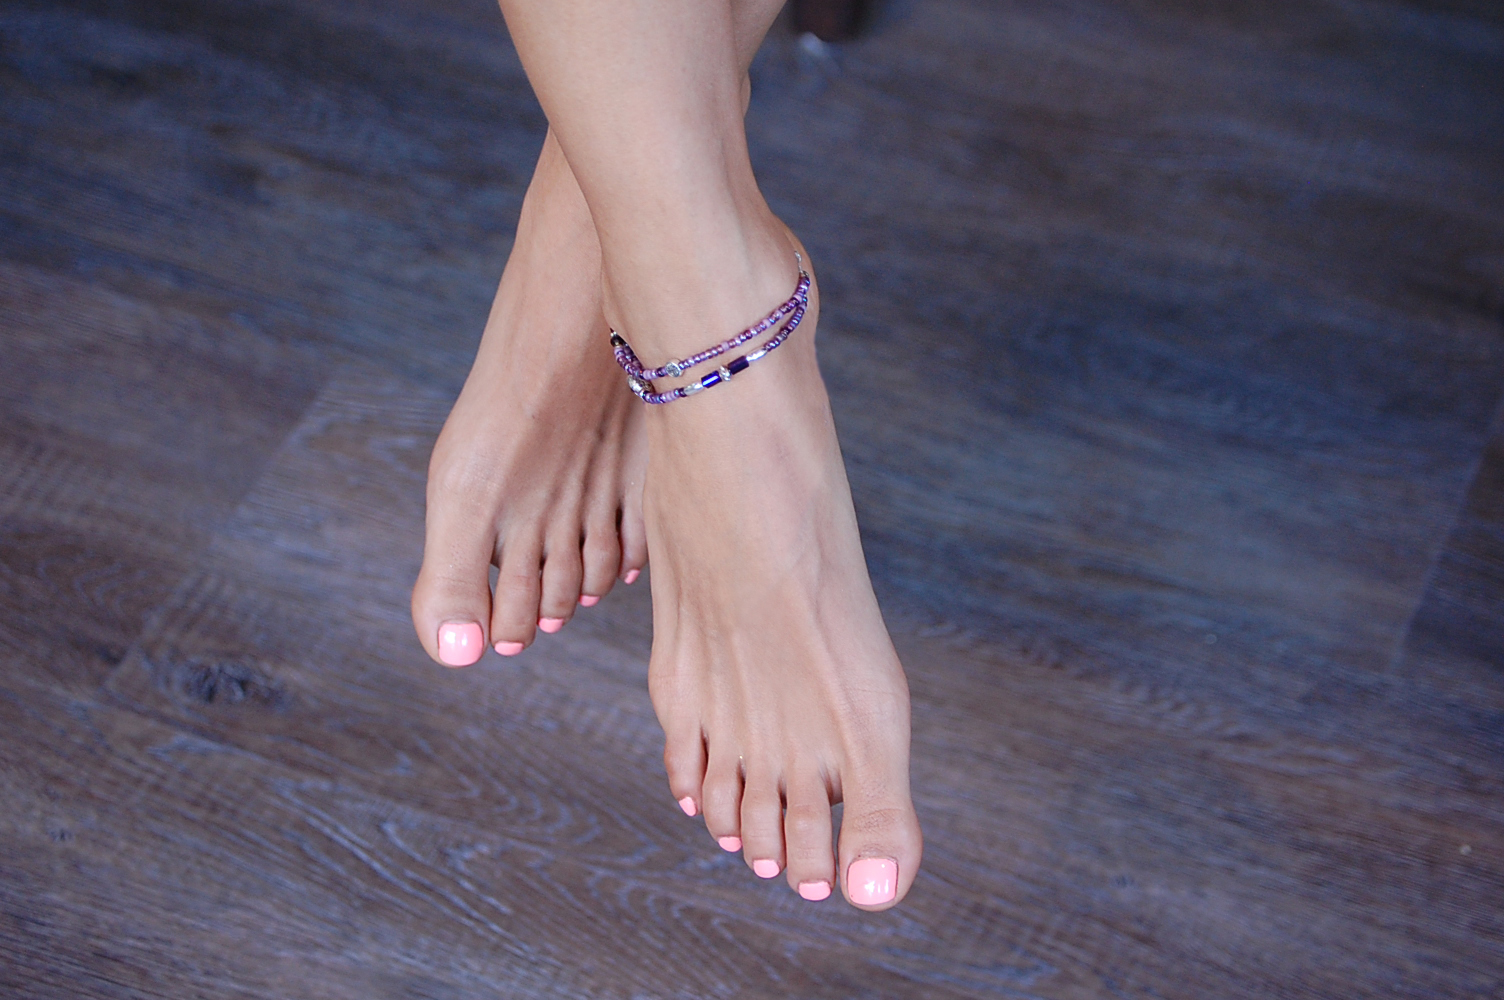 Double Anklets - Designed to pair with your favorite toe anklet, our single and double traditional Anklets are just as stunning! Mix and match to create a unique combination that fits your one-of-a-kind style...